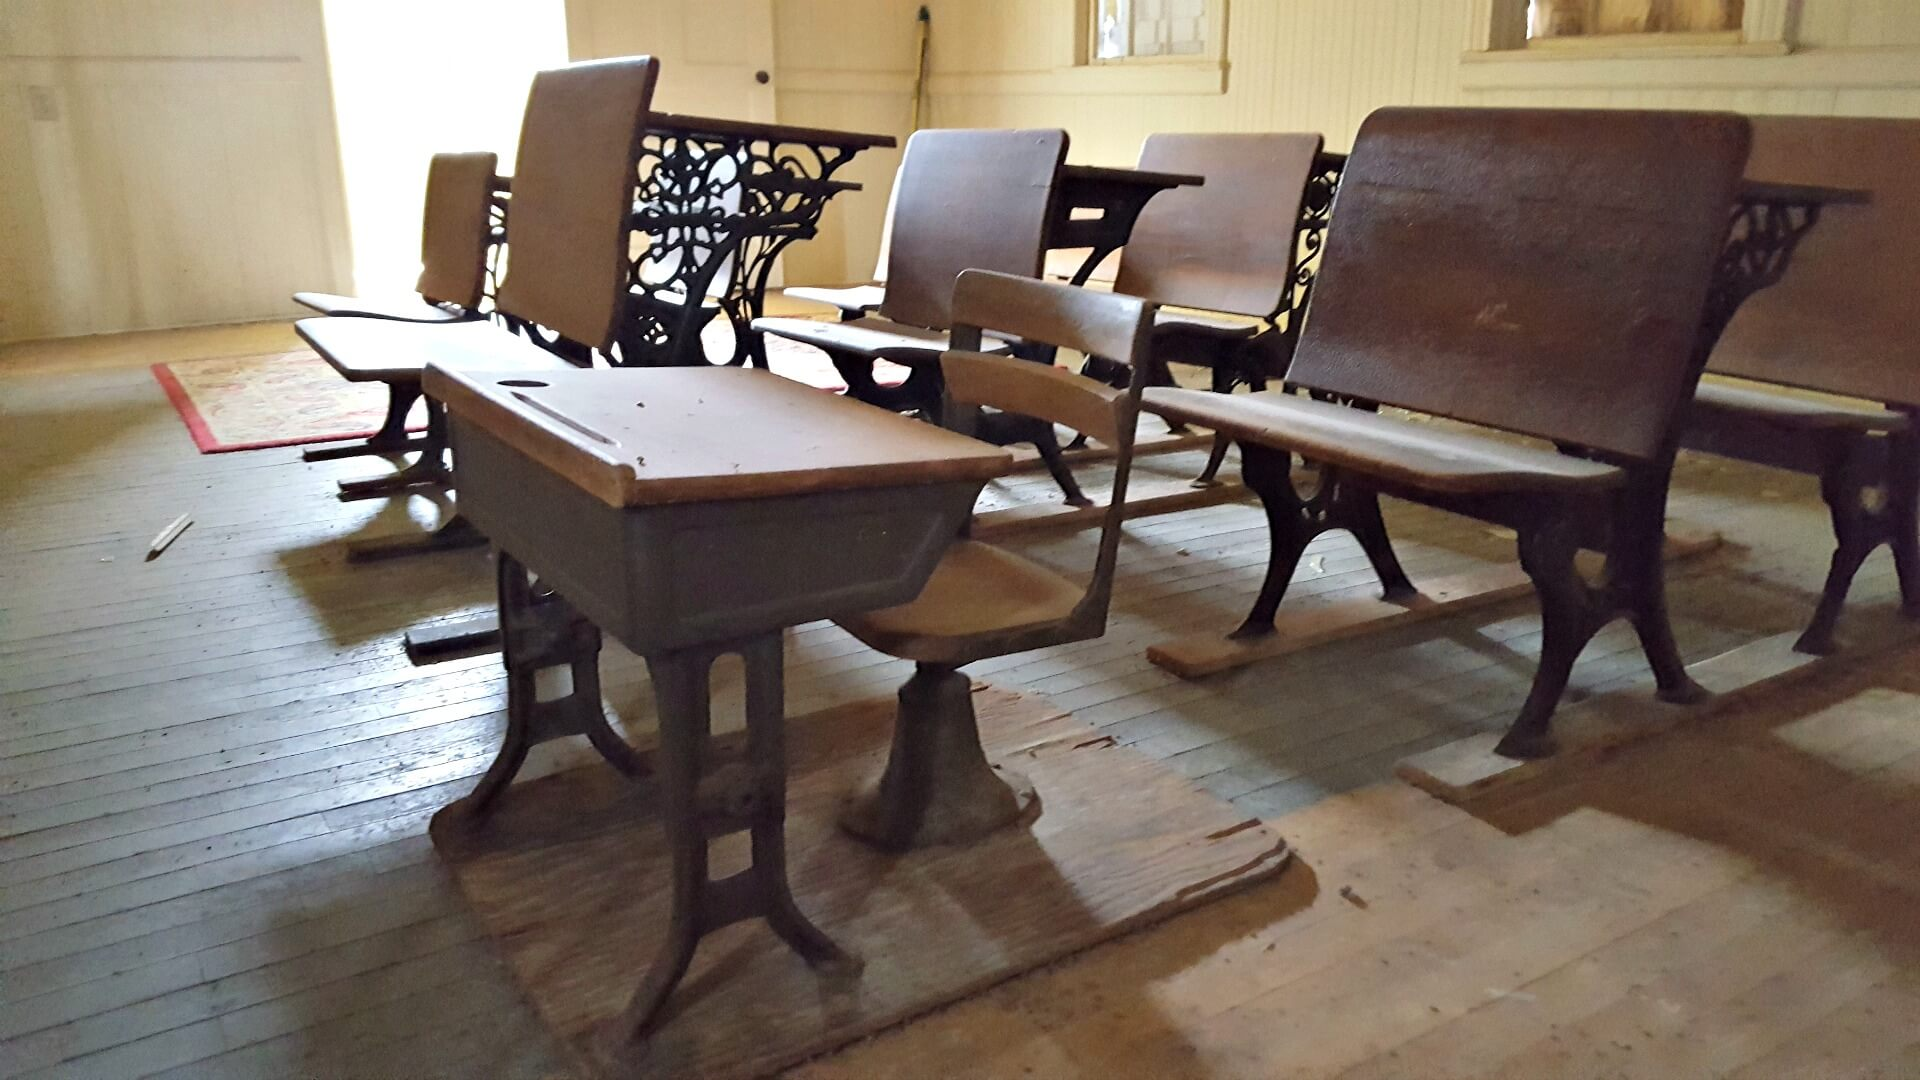 Desks inside the former Belding School